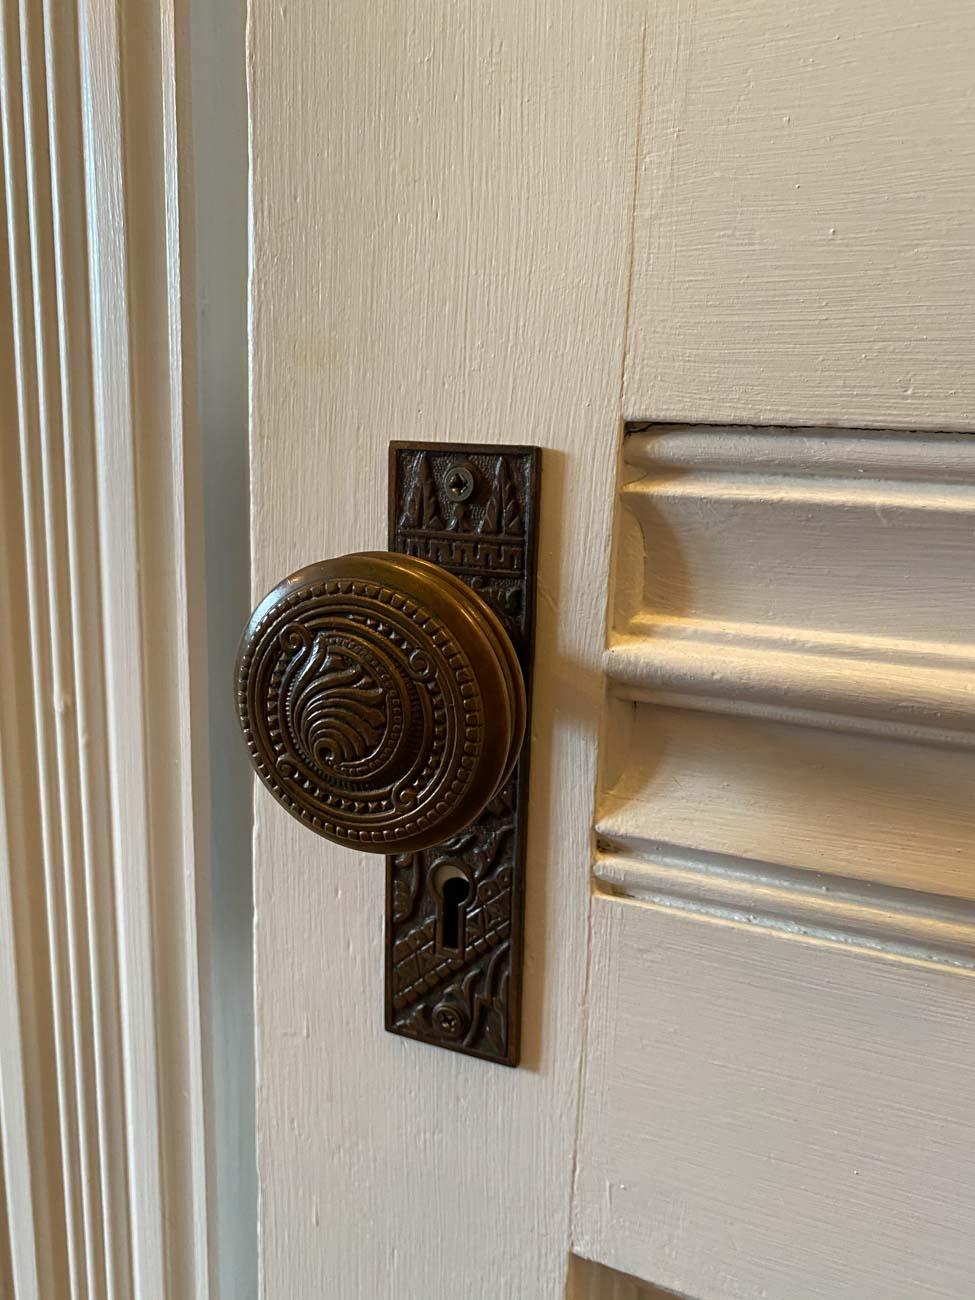 Manning made sure to have the original hinges and door knobs restored, as well. / Image: Michael Manning // Published: 1.12.21